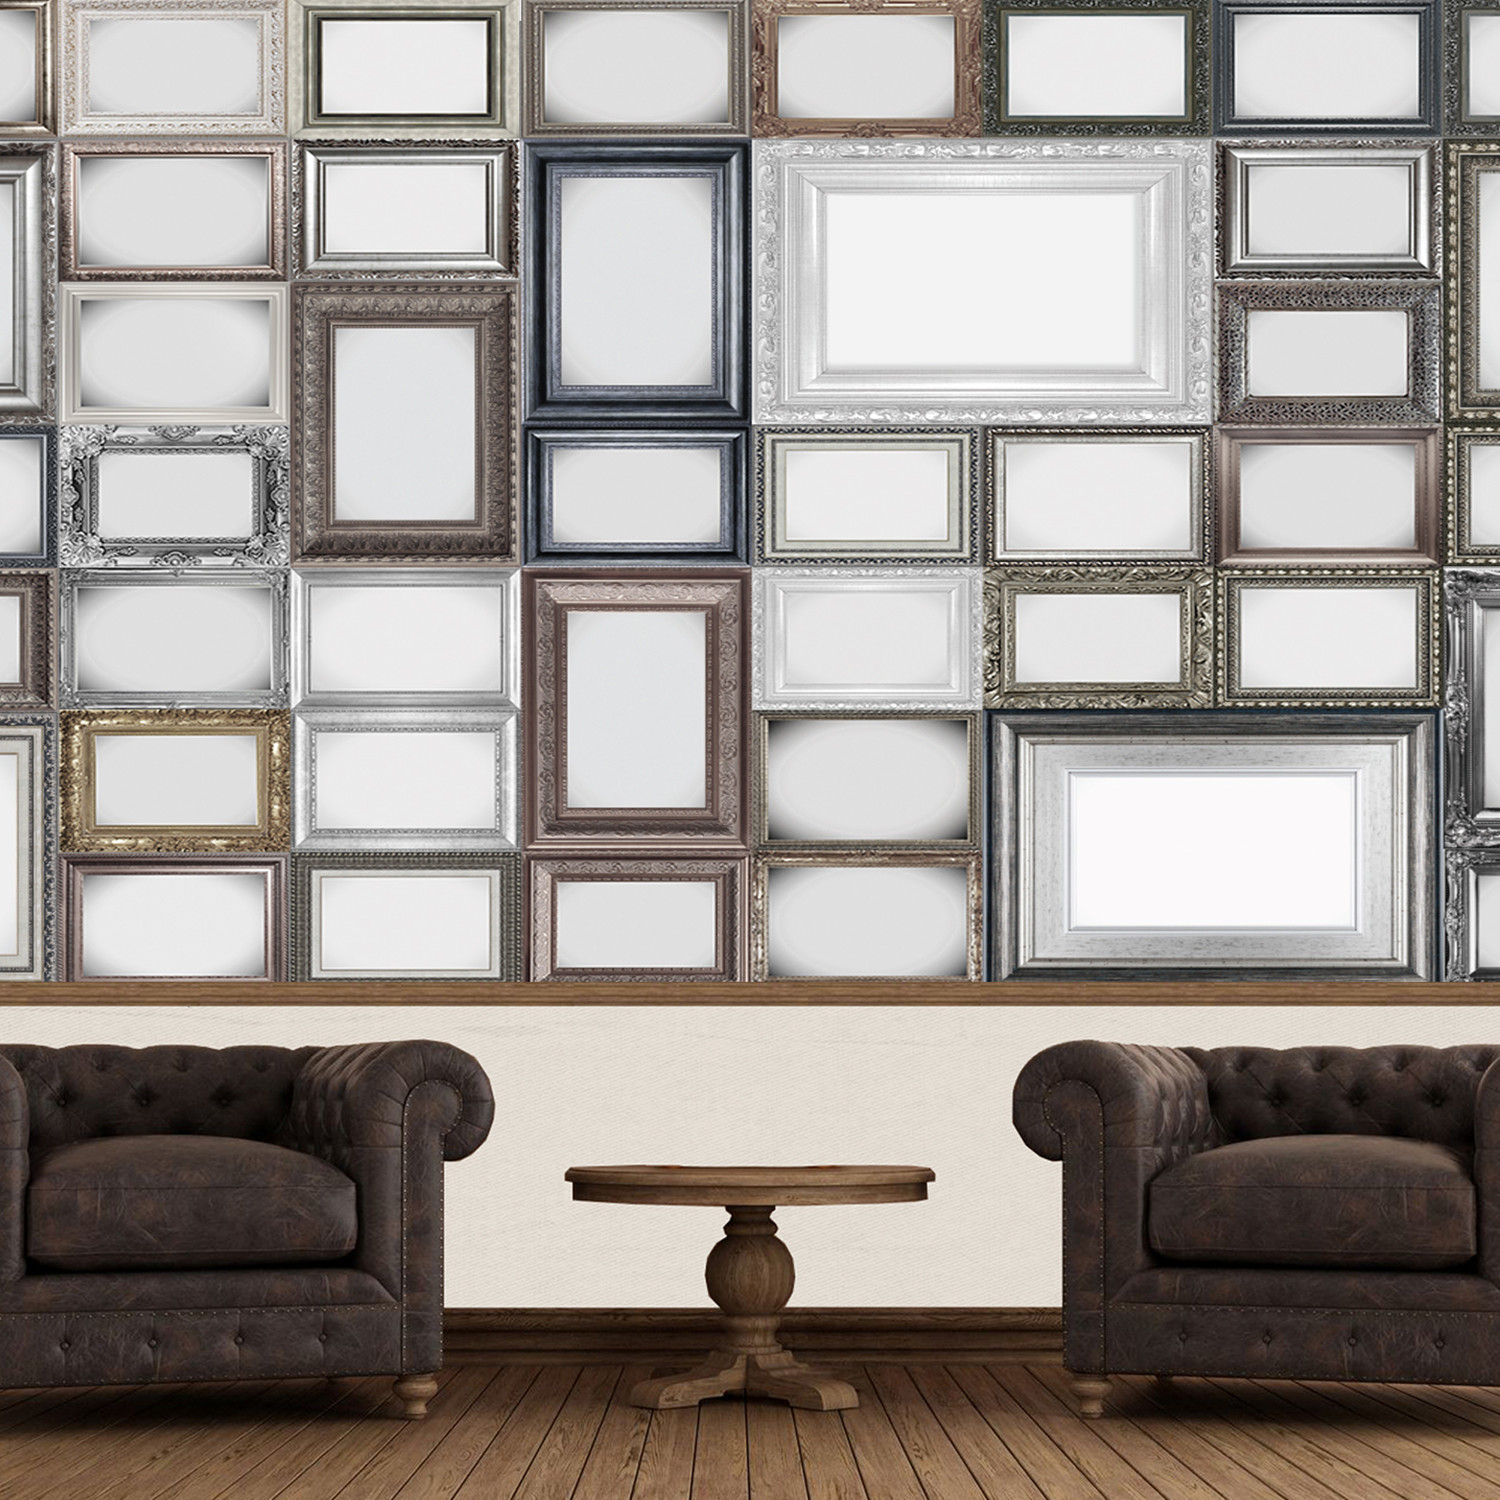 Creative Collage // Frames - 1WallMurals - Touch of Modern